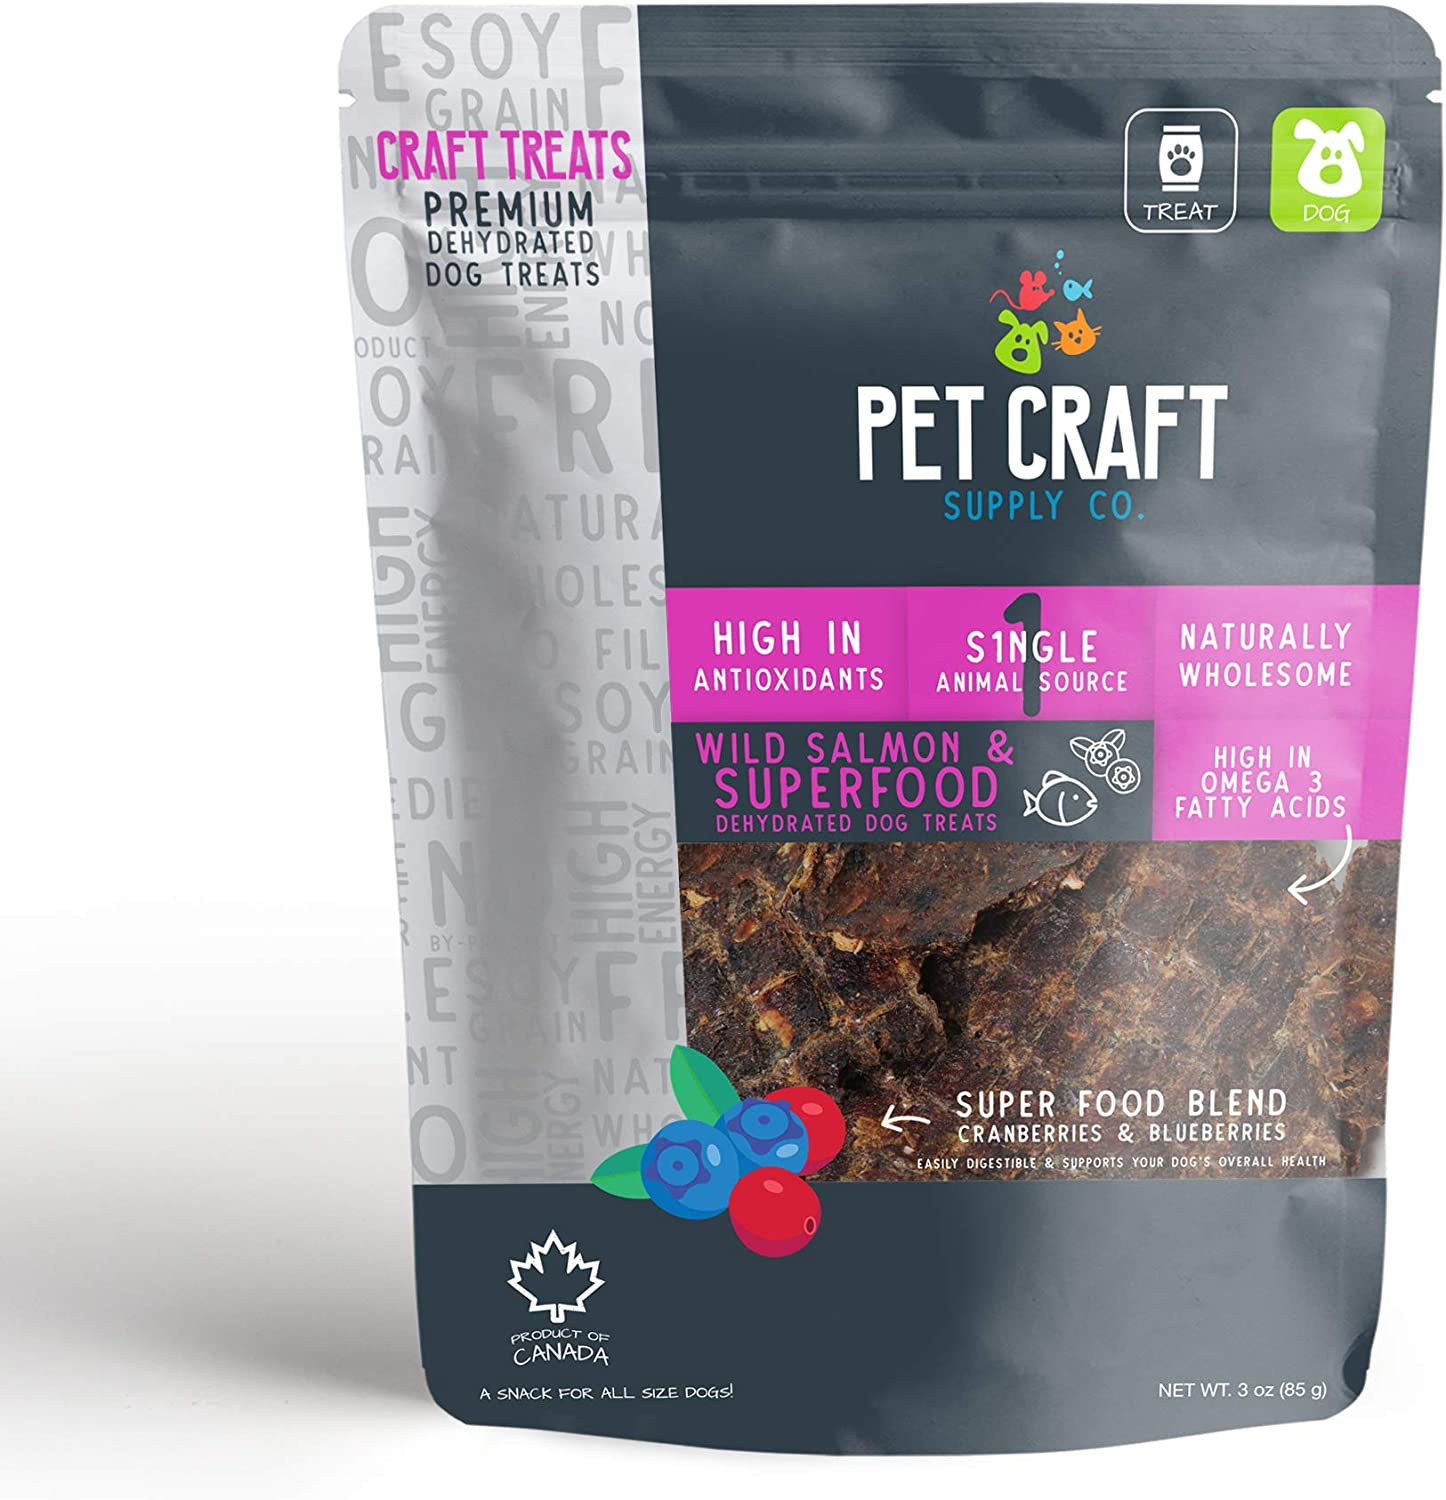 Pet Craft Supply All Natural Dehydrated Pork Beef Liver Salmon Treats Healthy Human Grade for Small Medium Large Dog Senior Puppy Training Protein Rich Healthy Vitamins No Additives Made in Canada